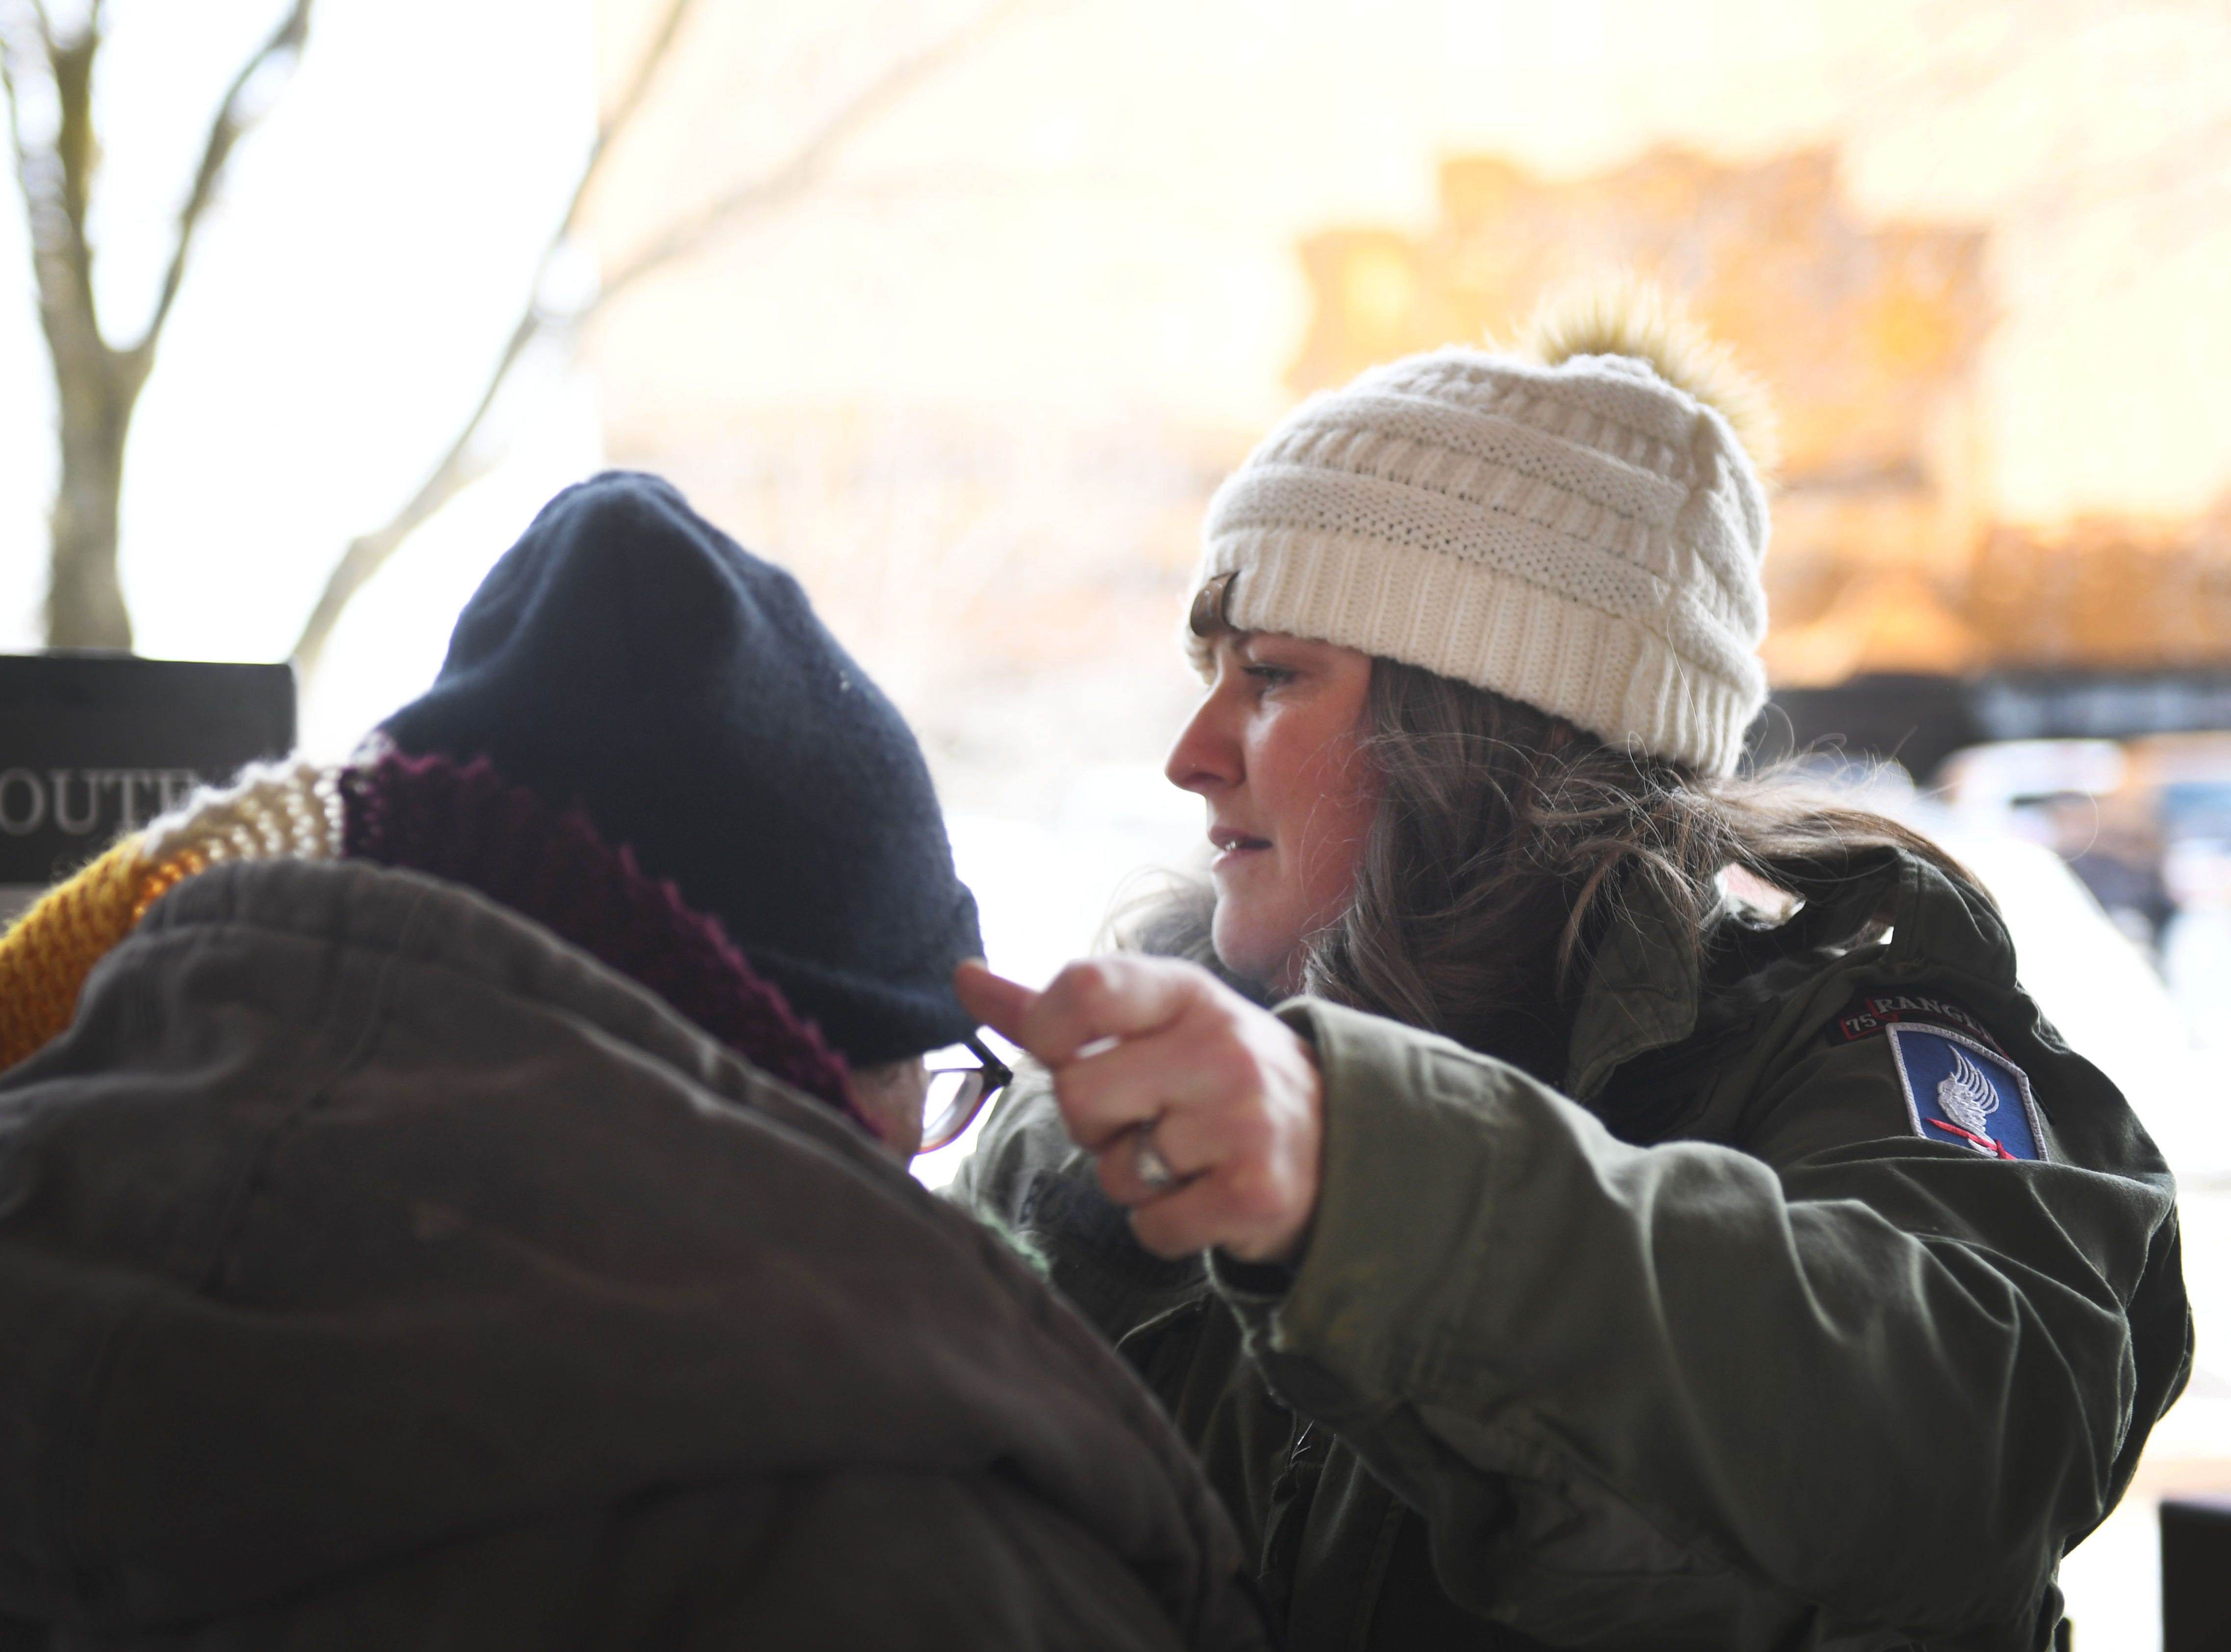 Amy Lawrence fixes a bus passengers hat and then hands them a hand warmer at the The Bus Stop downtown terminal, Tuesday, Jan. 29, in Sioux Falls.